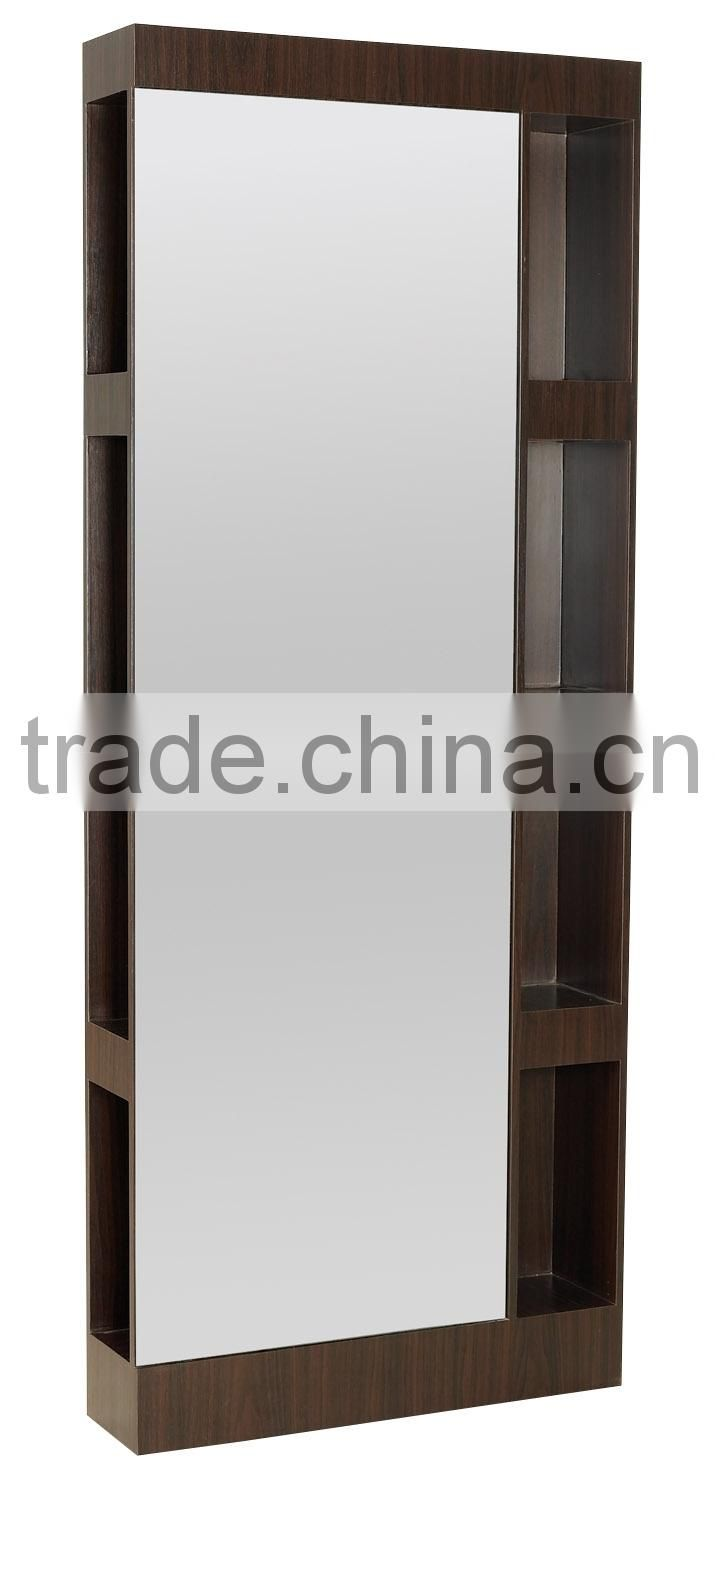 2015 New style newest fancy wood wall mirrors for salon design